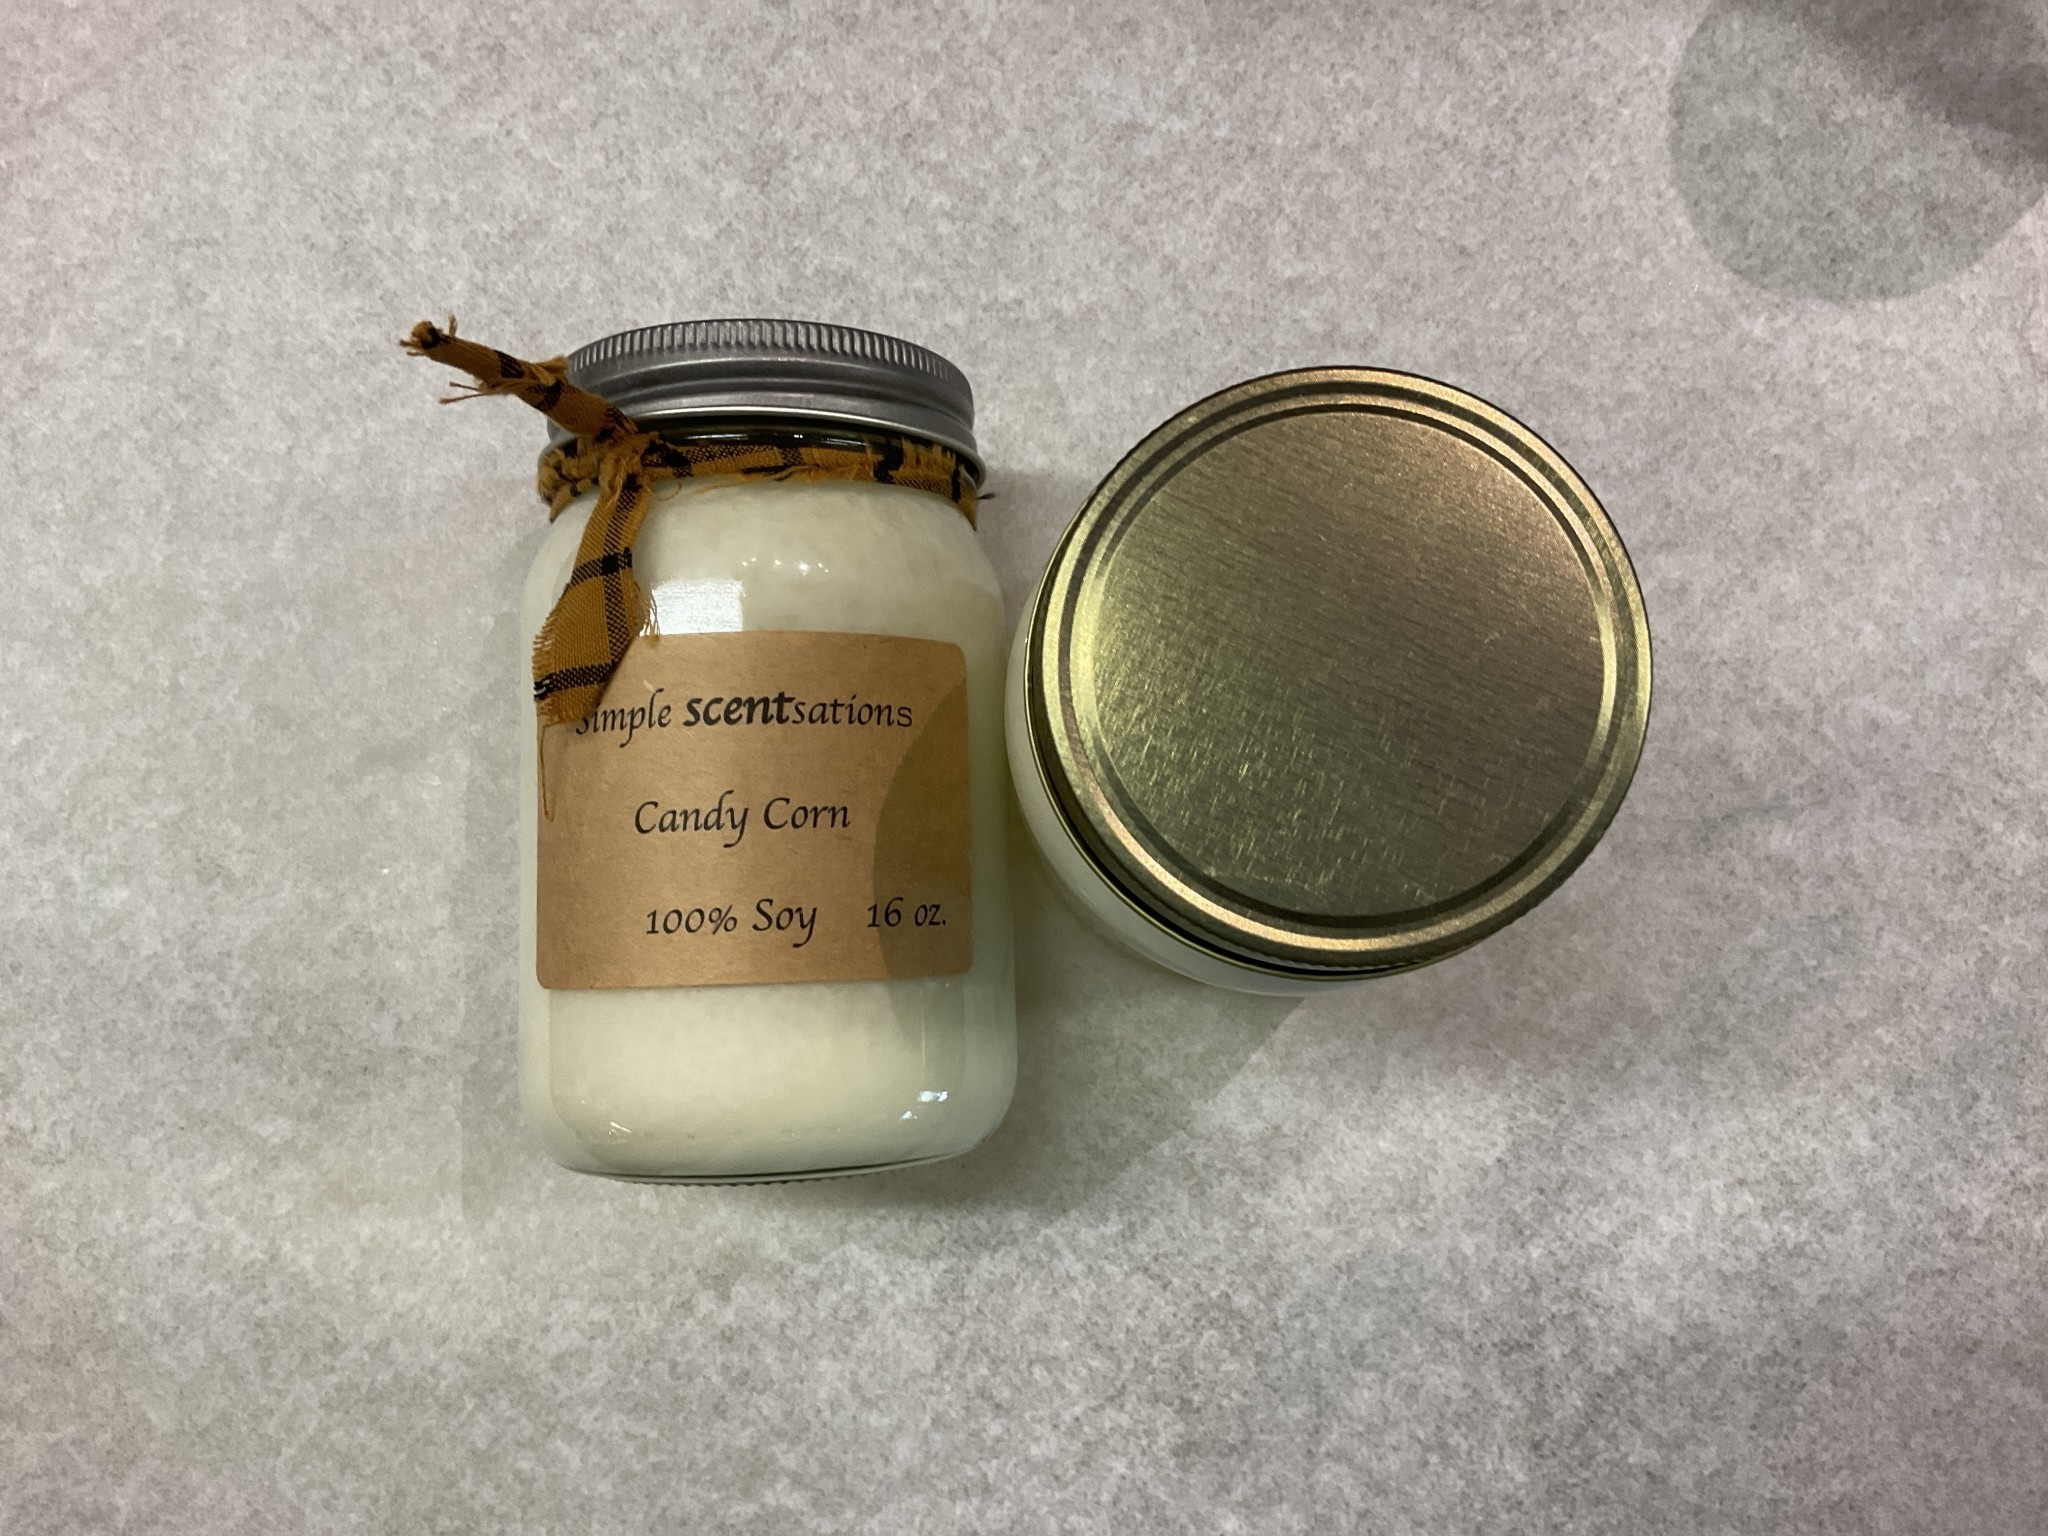 Simple Scentsation Candy Corn 16 oz. soy candles